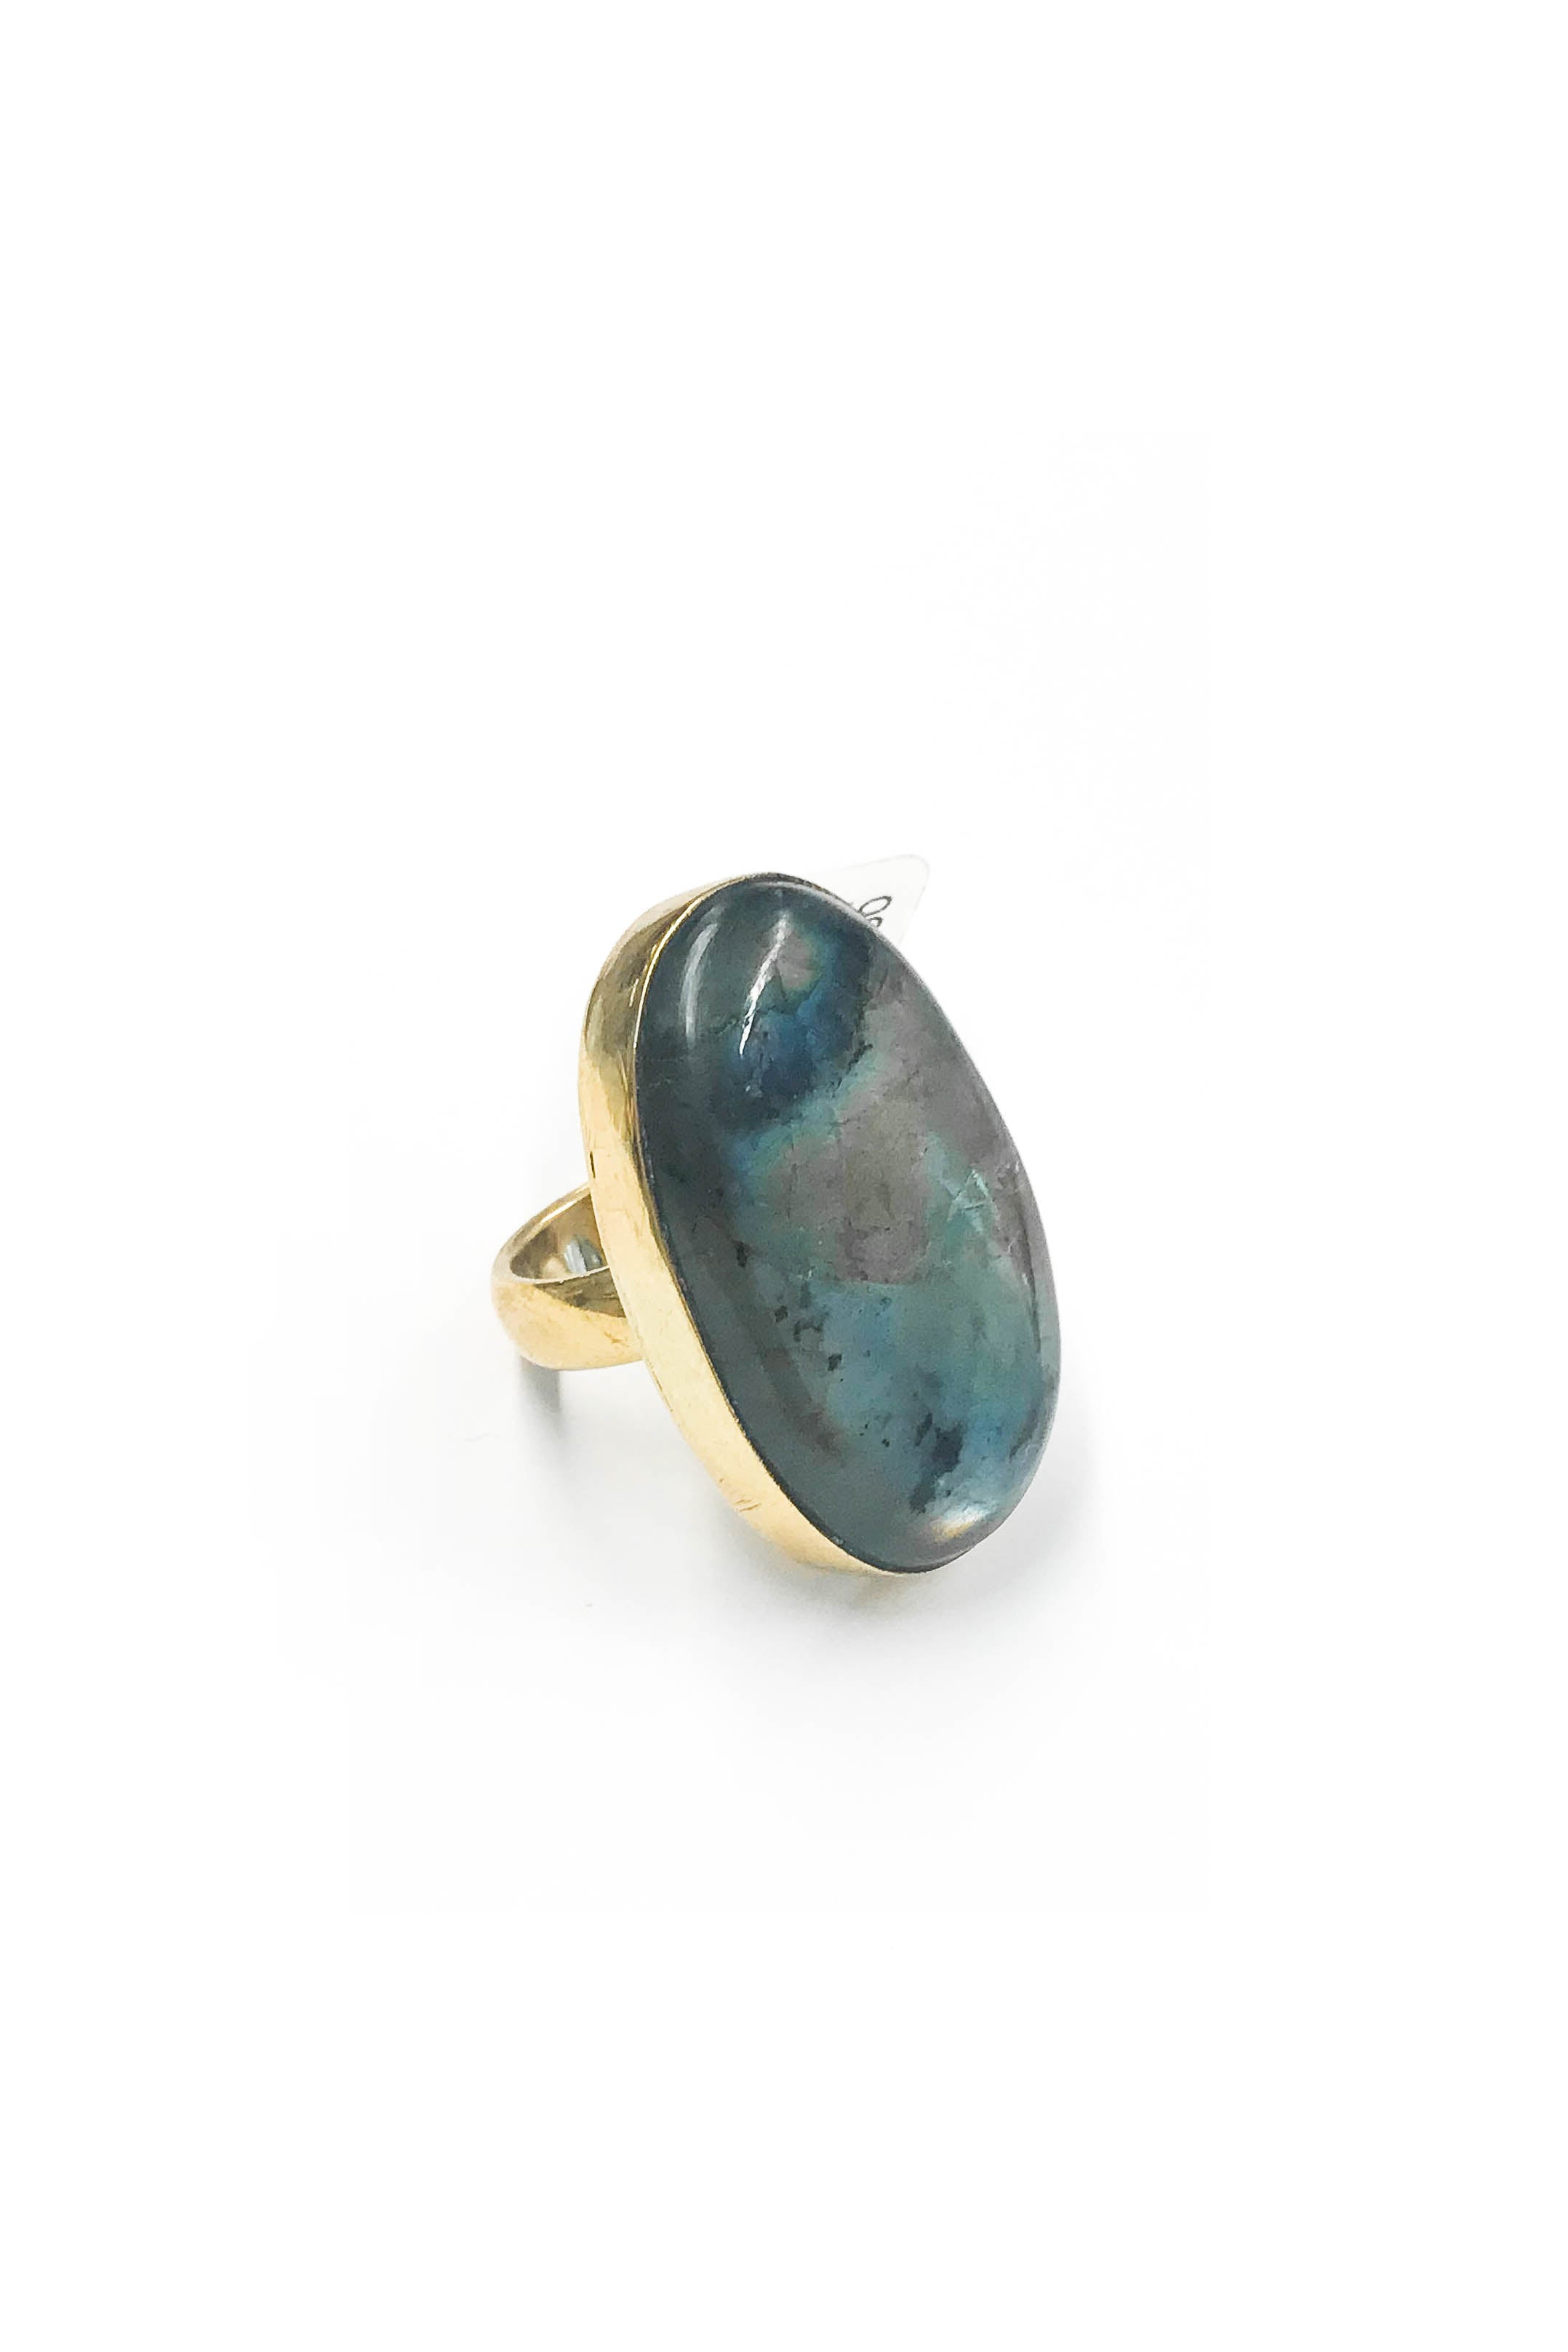 Baizaar Labradorite Freeform Oval Ring